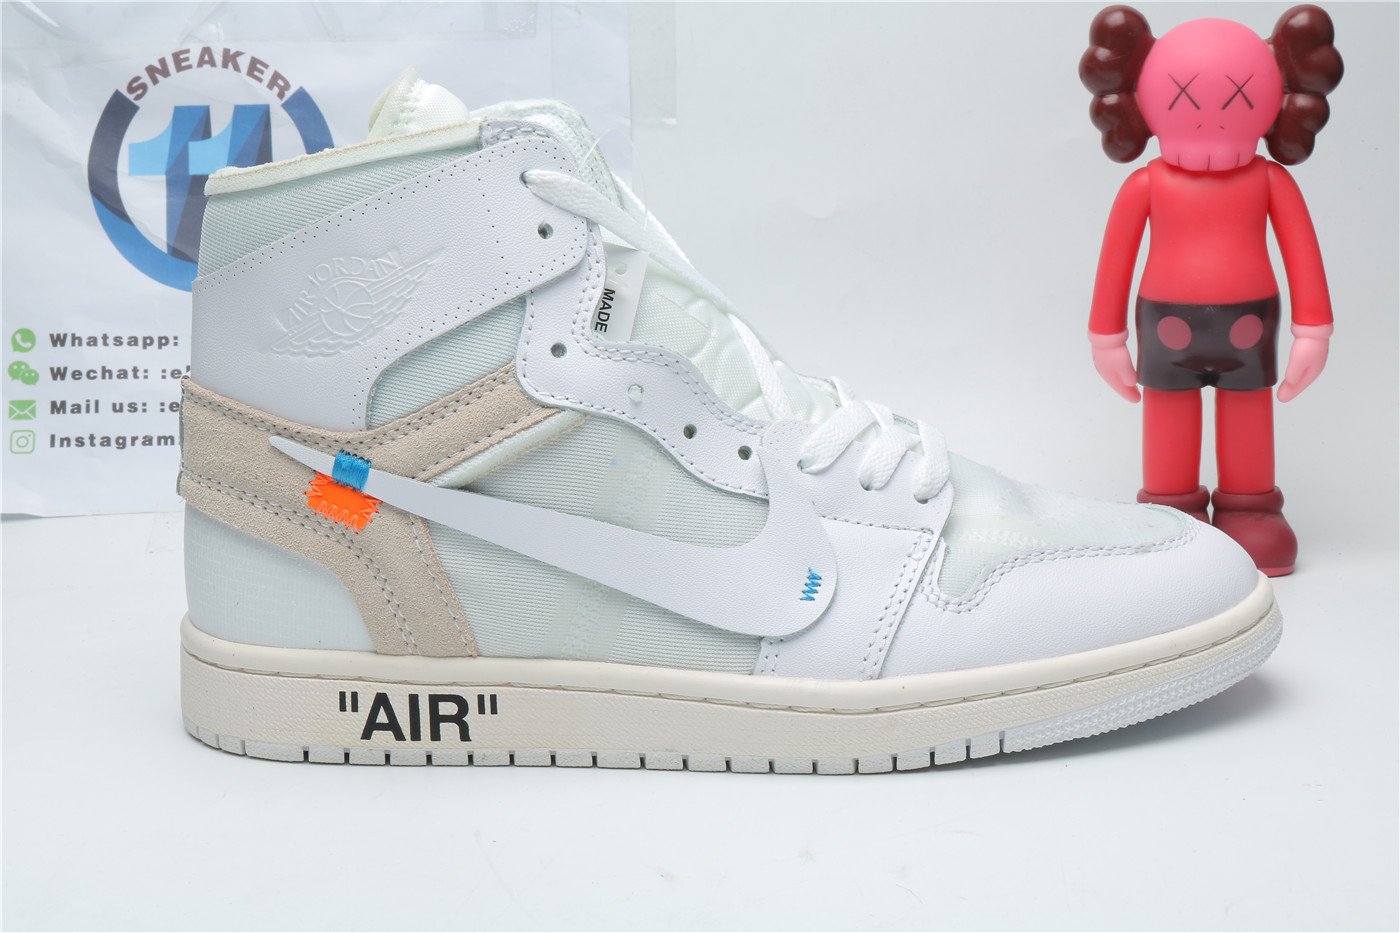 Air Jordan 1 Retro High Off-White White